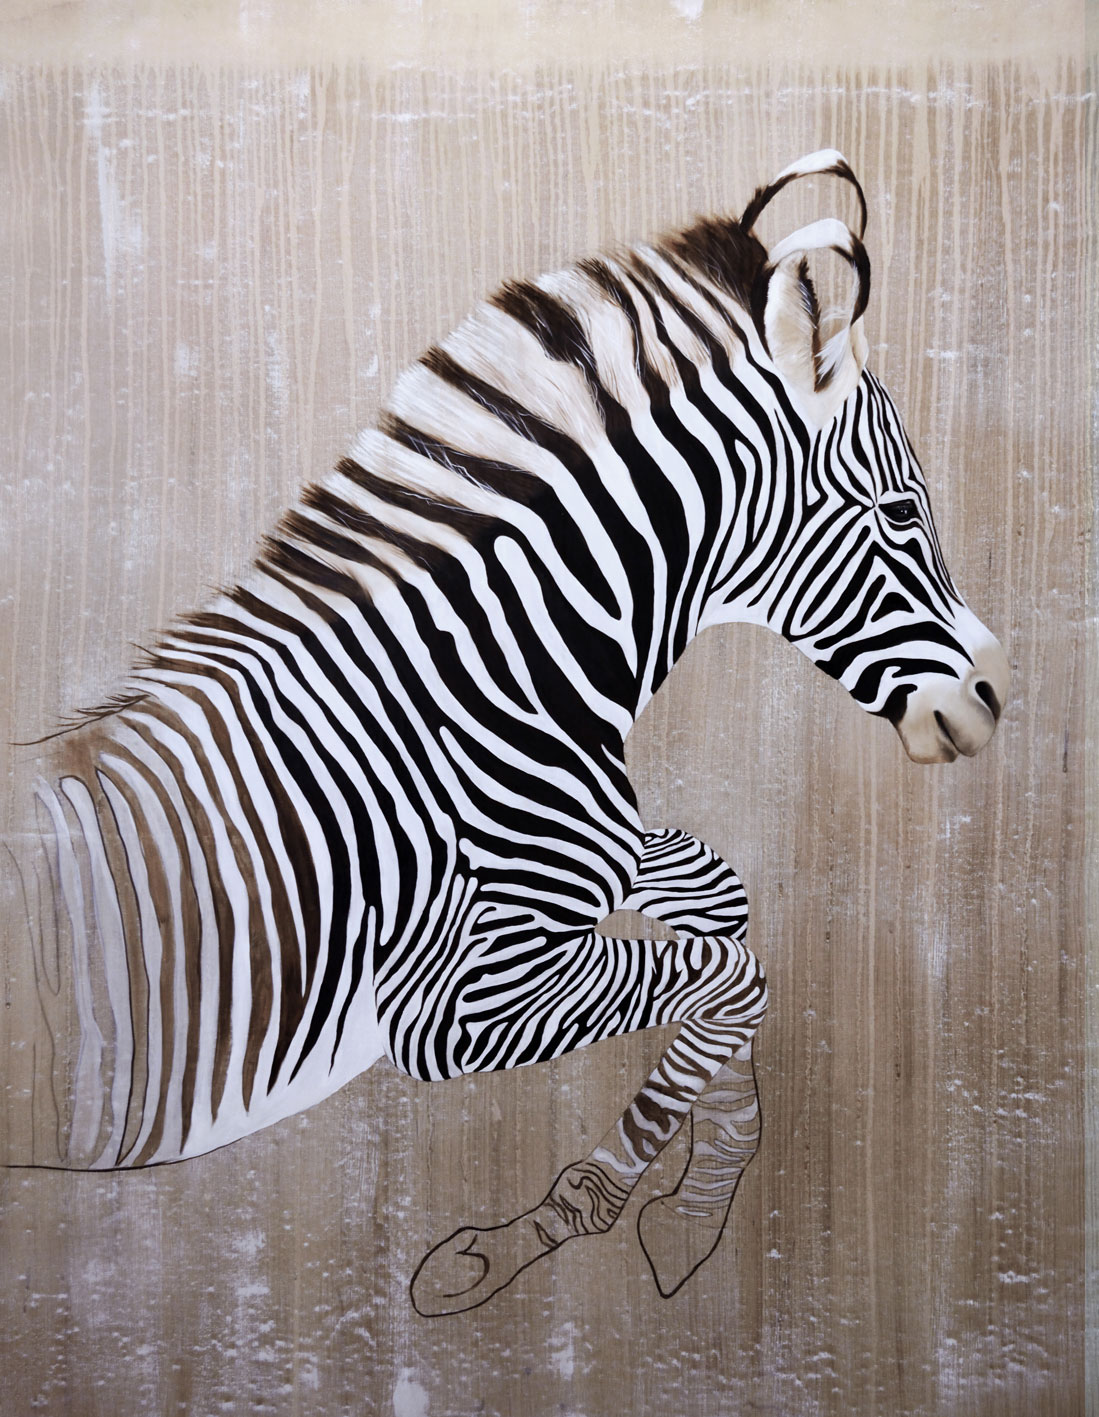 EQUUS GREVYI divers Thierry Bisch painter animals painting art decoration hotel design interior luxury nature biodiversity conservation